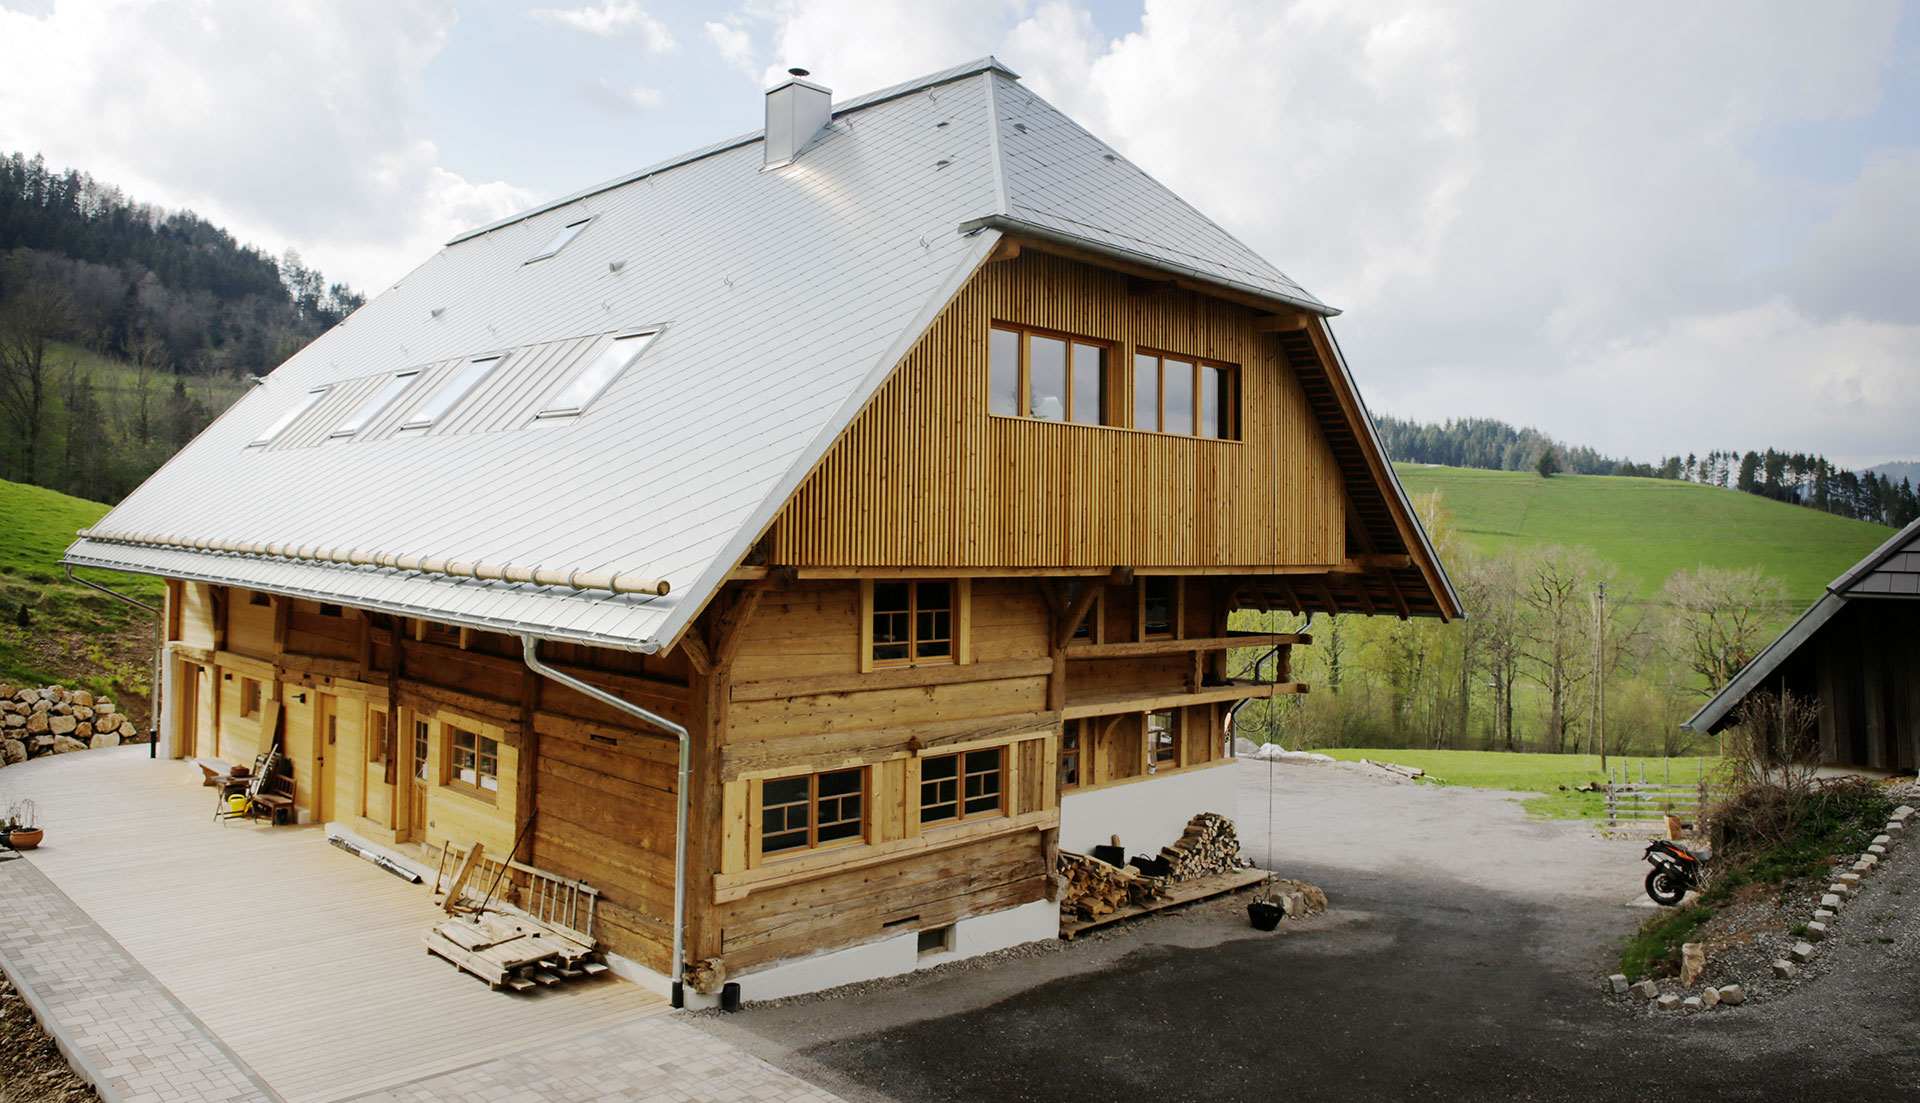 Refurbished house in the Black Forest